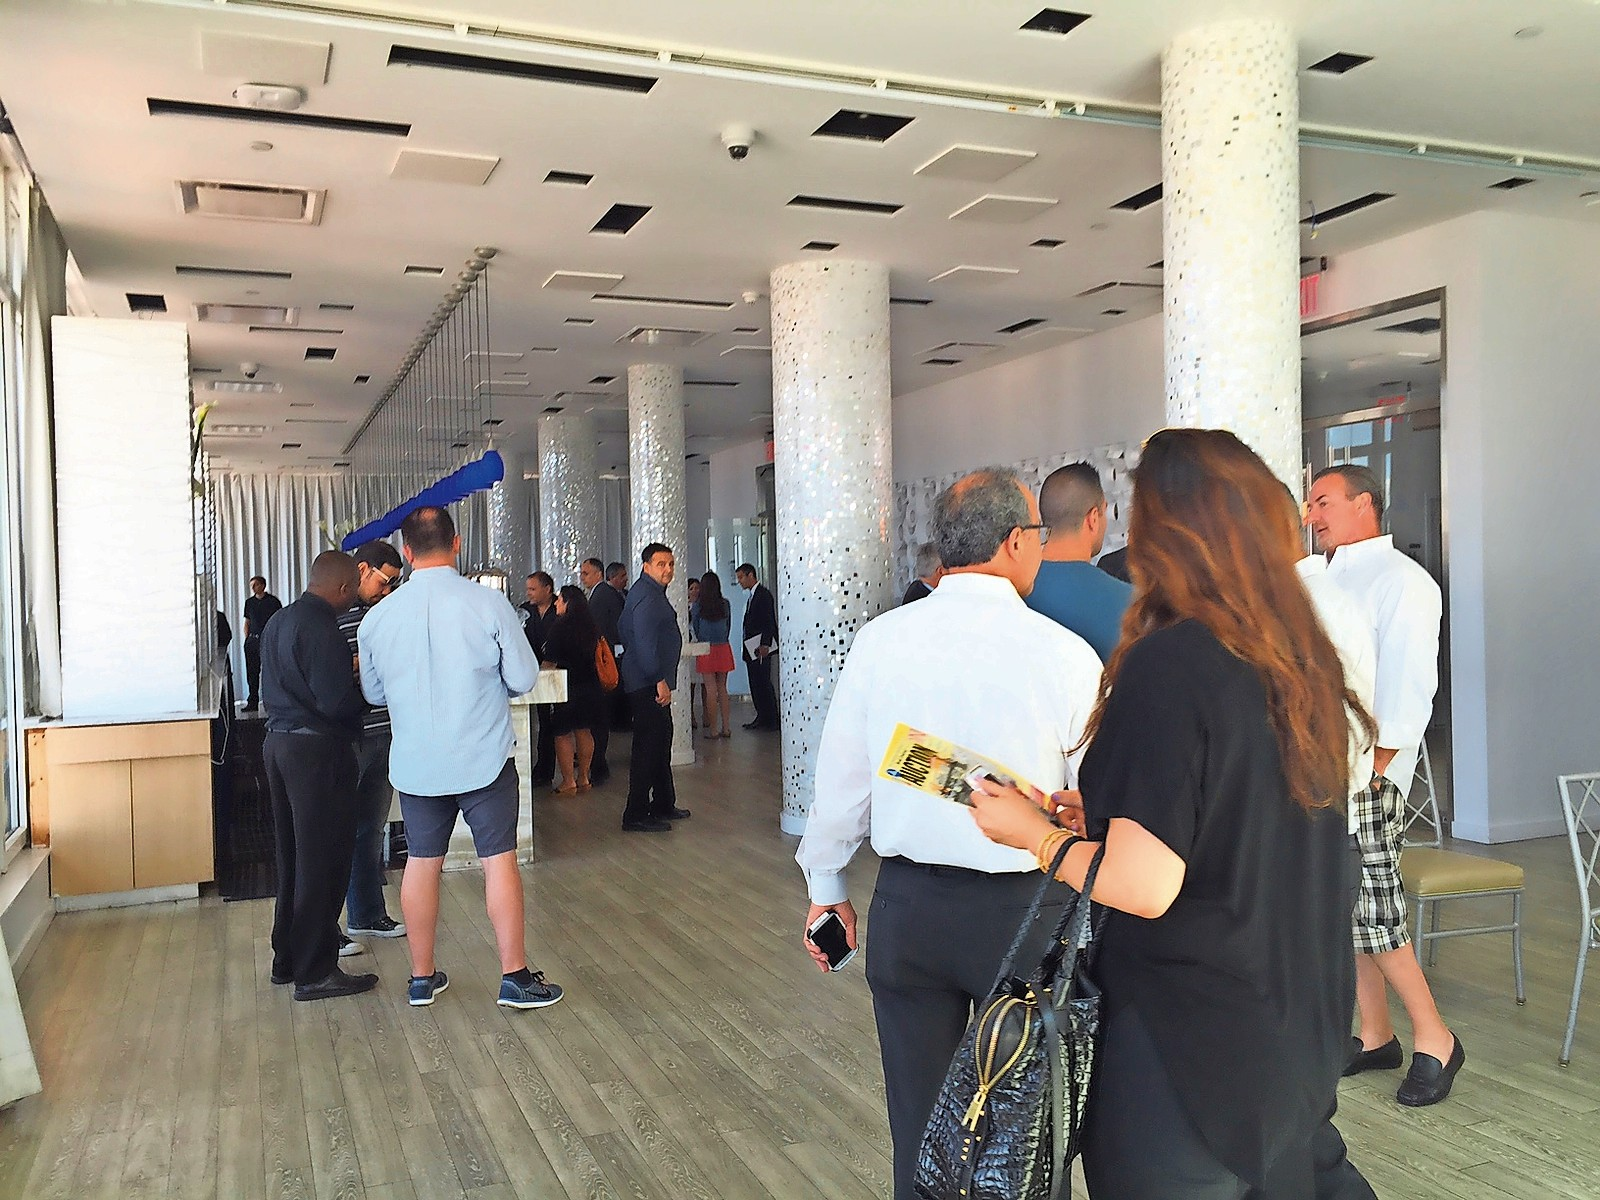 The auction, conducted by Central Islip-based Maltz Auctions, took place in the hotel's rooftop lounge and attracted a mix of potential buyers, developers, business owners and local residents. A total of nine bids were submitted.